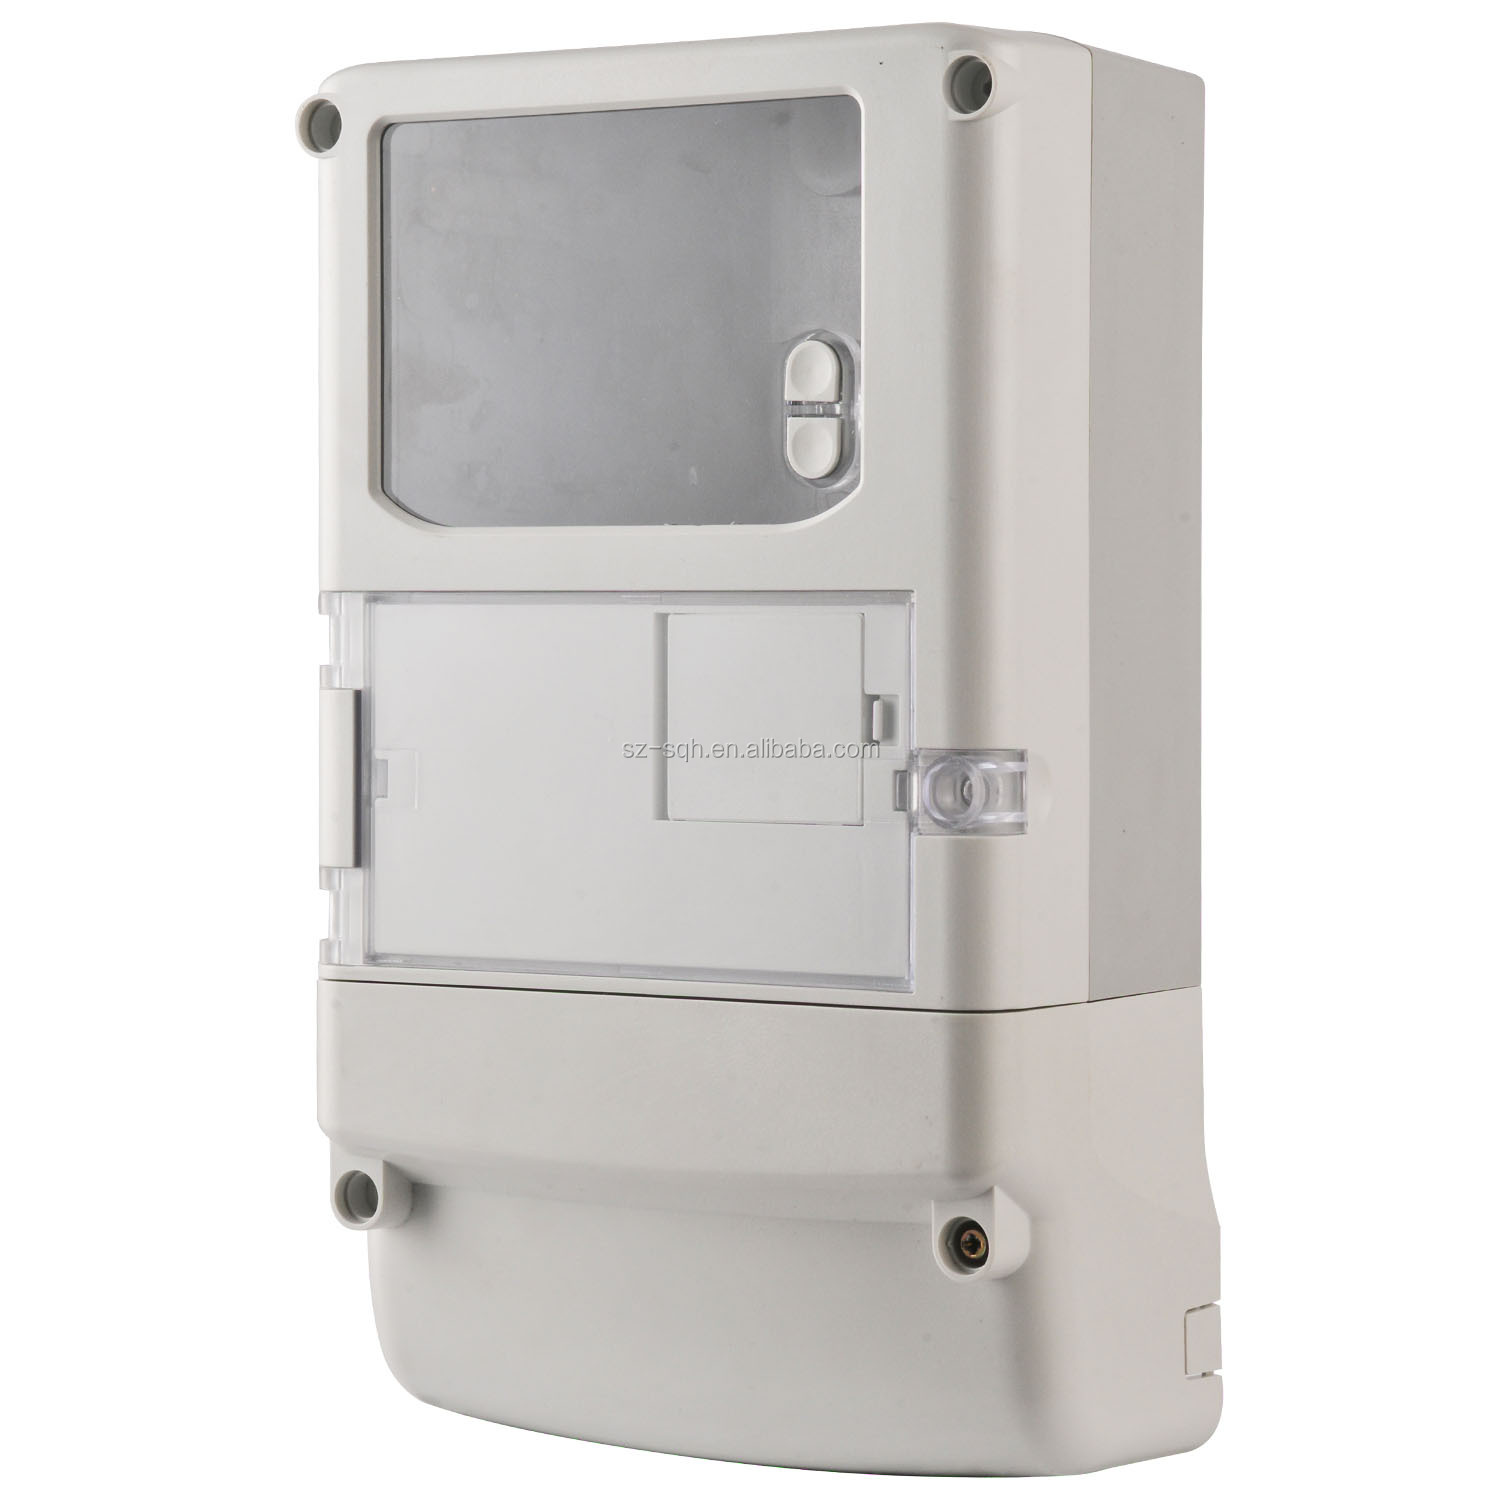 16 years' manufacturer of electricity meter box